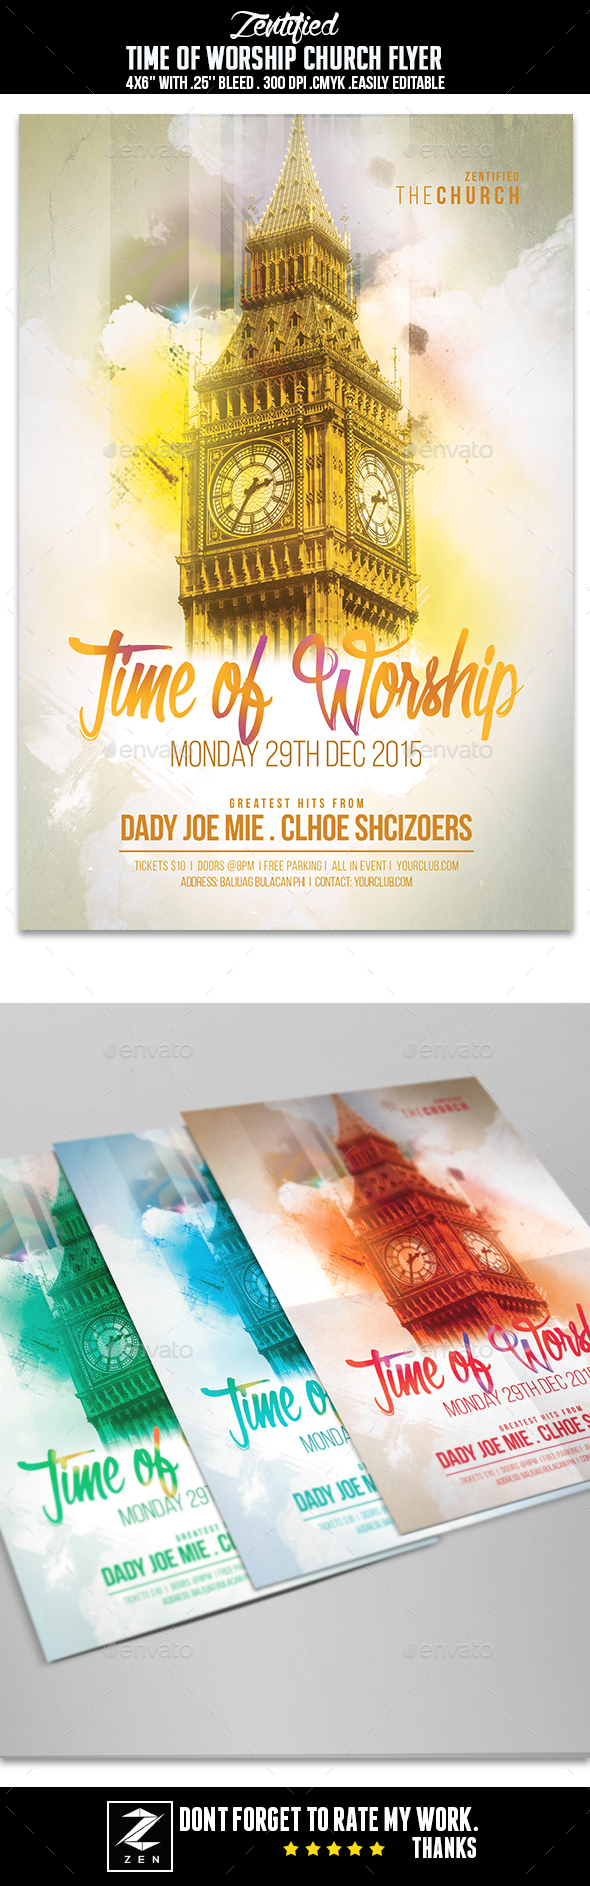 Time Of Worship Church Flyer - Church Flyers